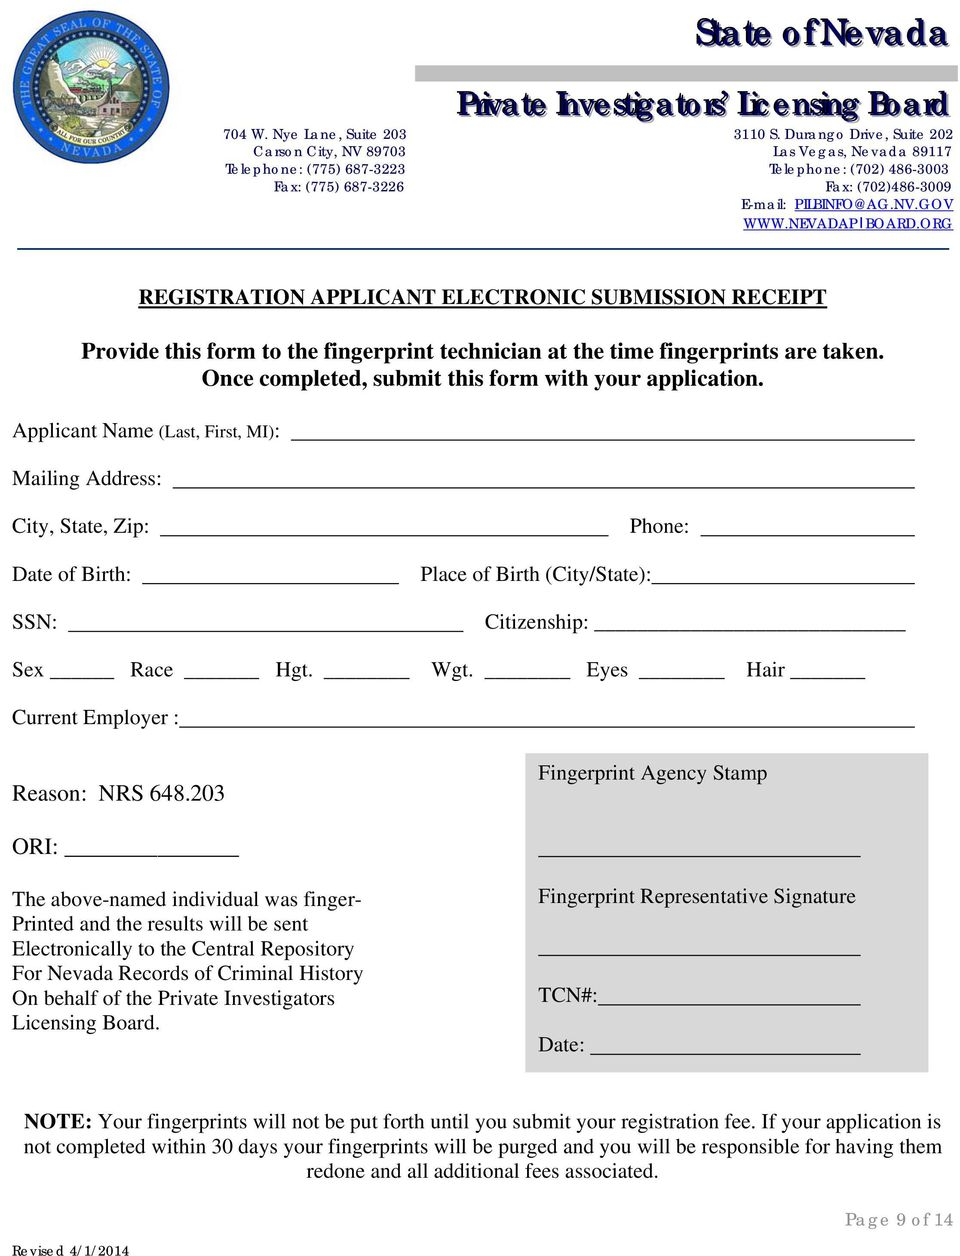 NEVADAPIBOARD.ORG REGISTRATION APPLICANT ELECTRONIC SUBMISSION RECEIPT  Provide this form to the fingerprint technician at